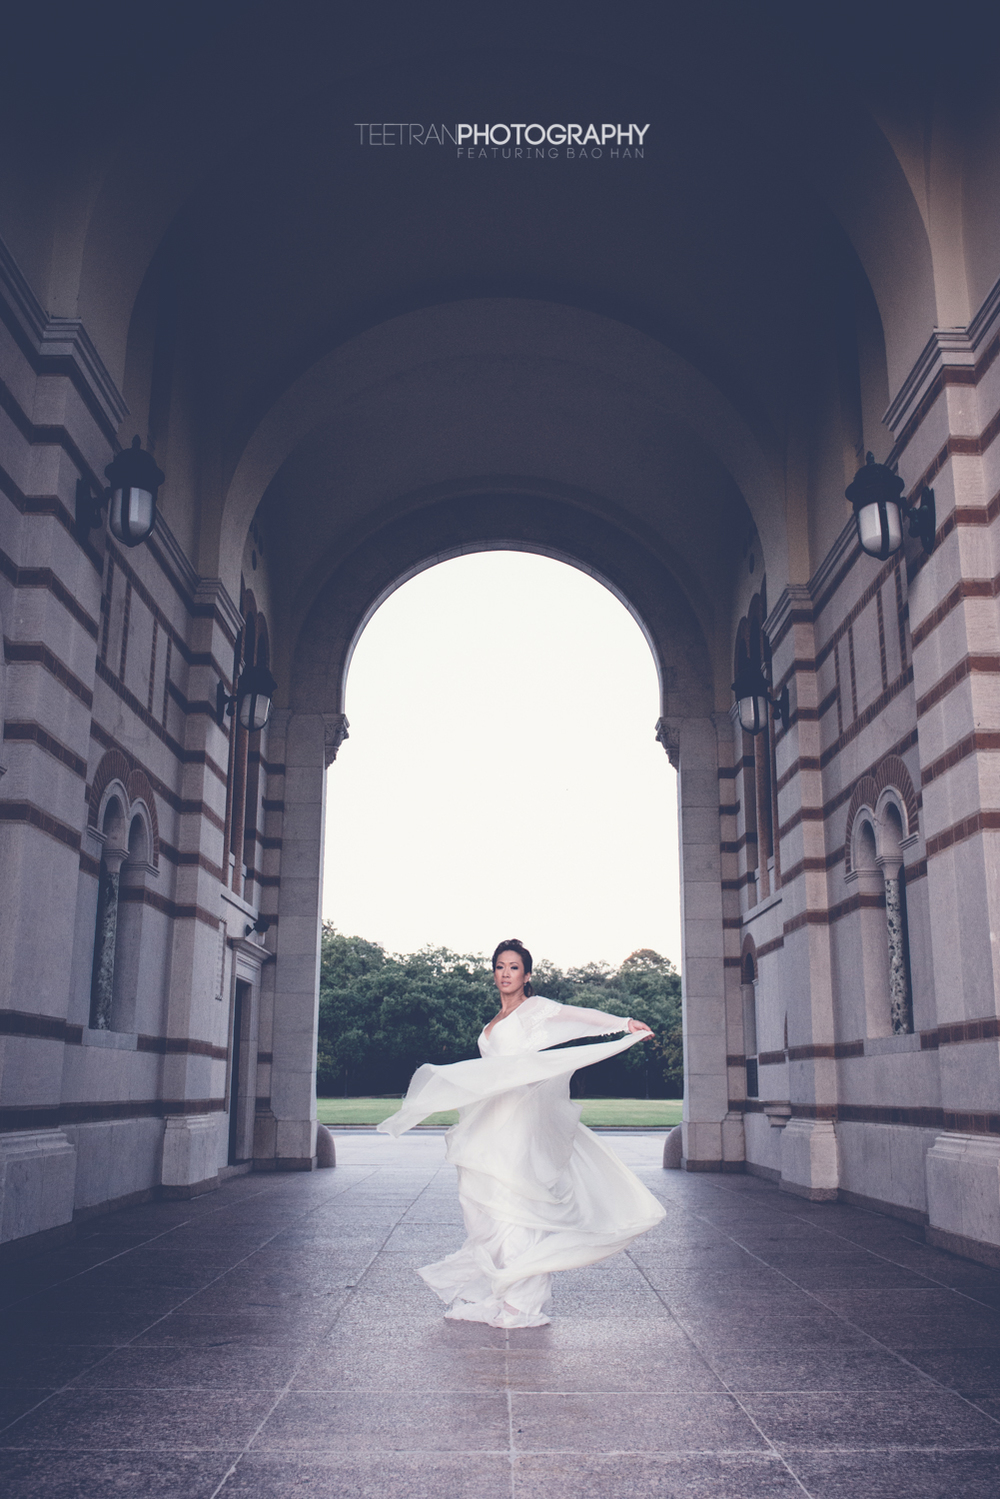 rice-university-bride-wedding-3.jpg